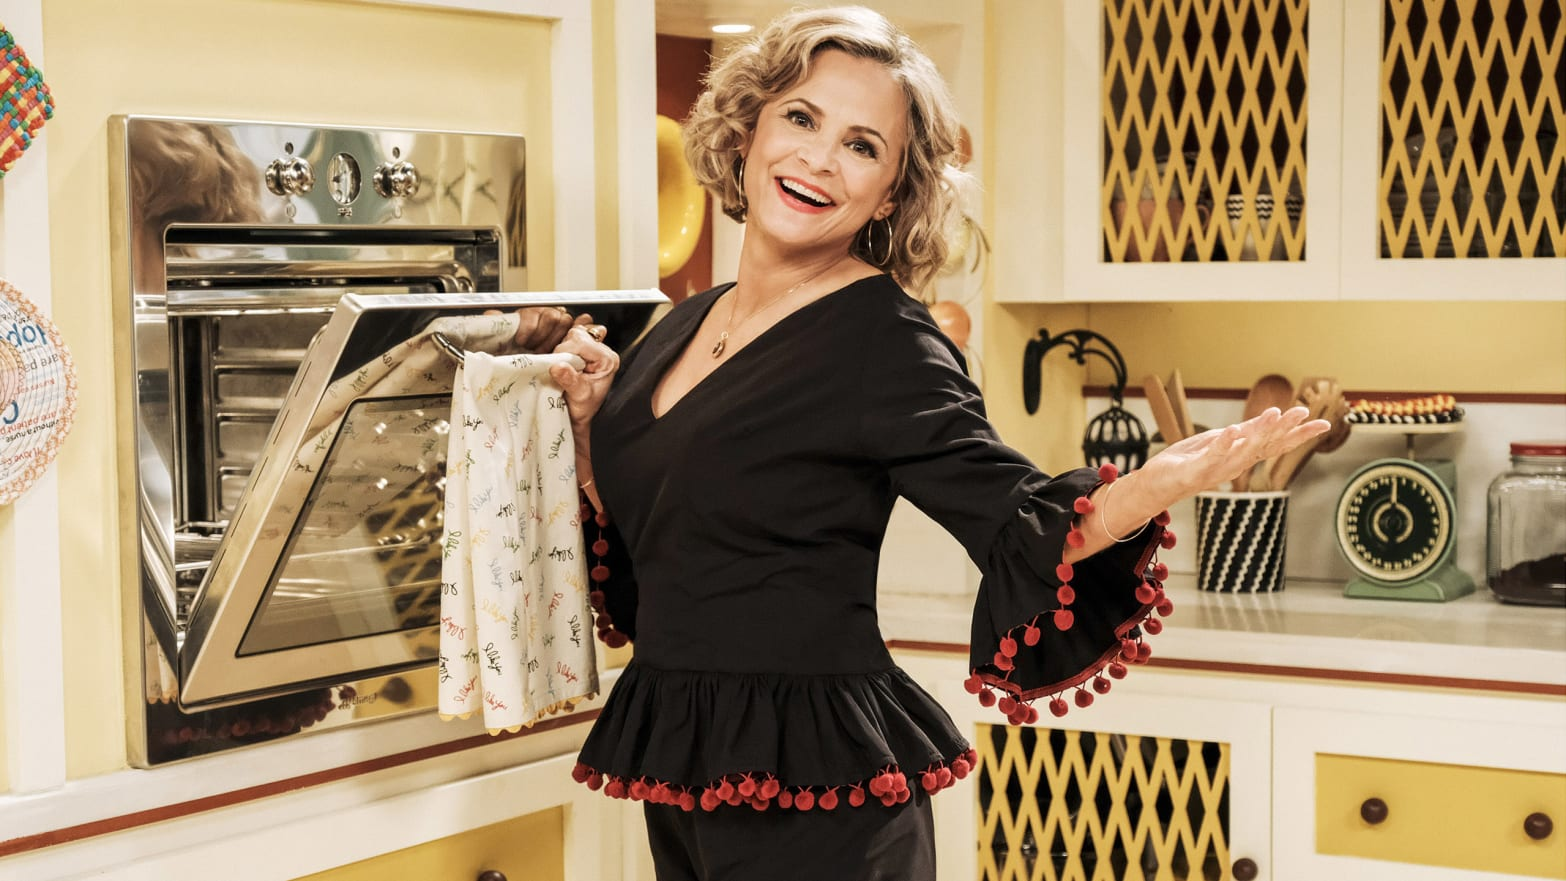 Amy Sedaris Kimmy Schmidt amy sedaris: the demented martha stewart we need right now